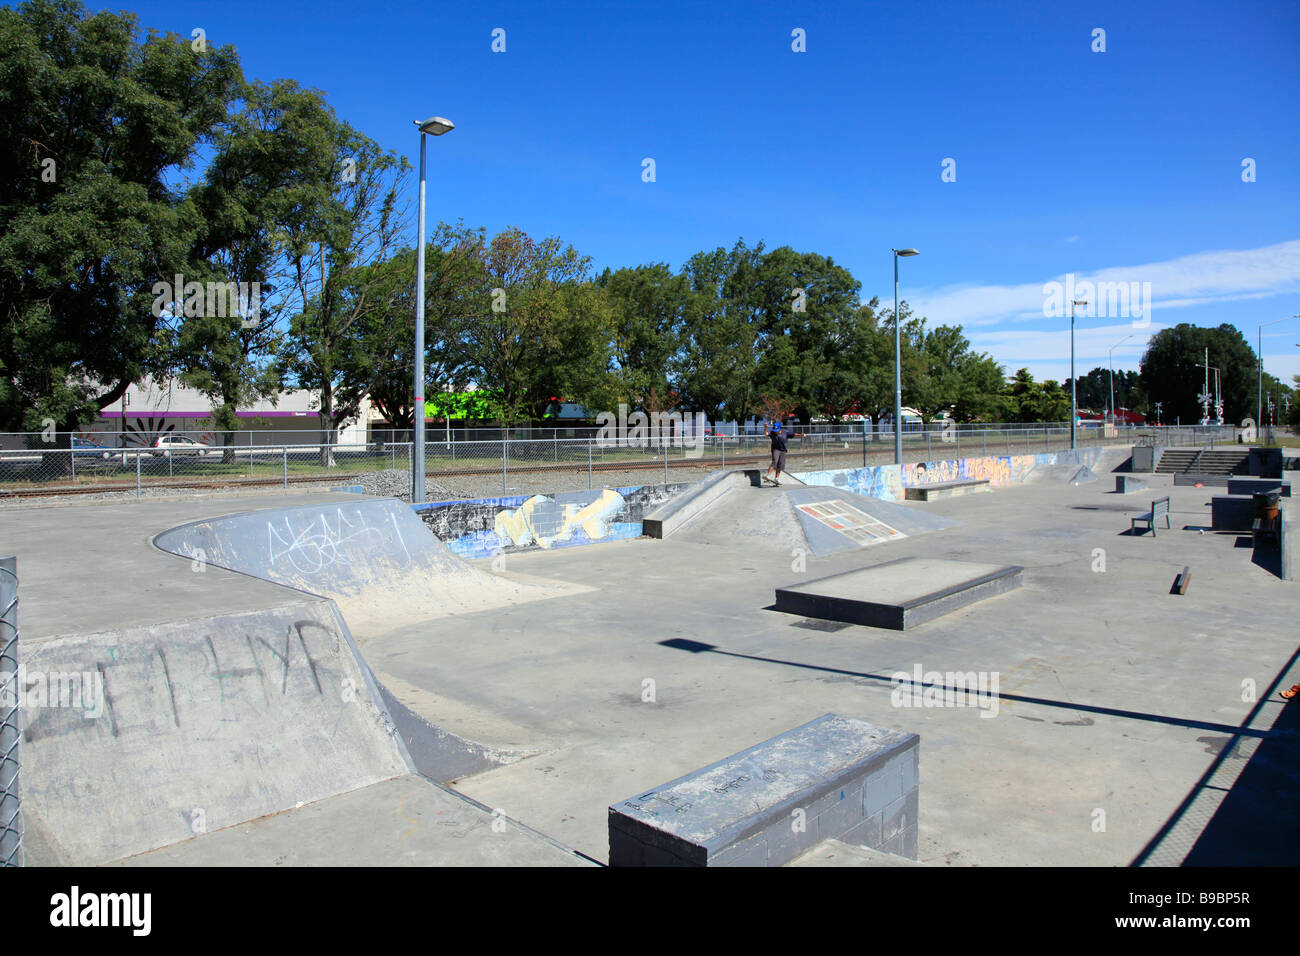 Skate board concrete park,Ashburton,Mid Canterbury,South Island,New Zealand - Stock Image